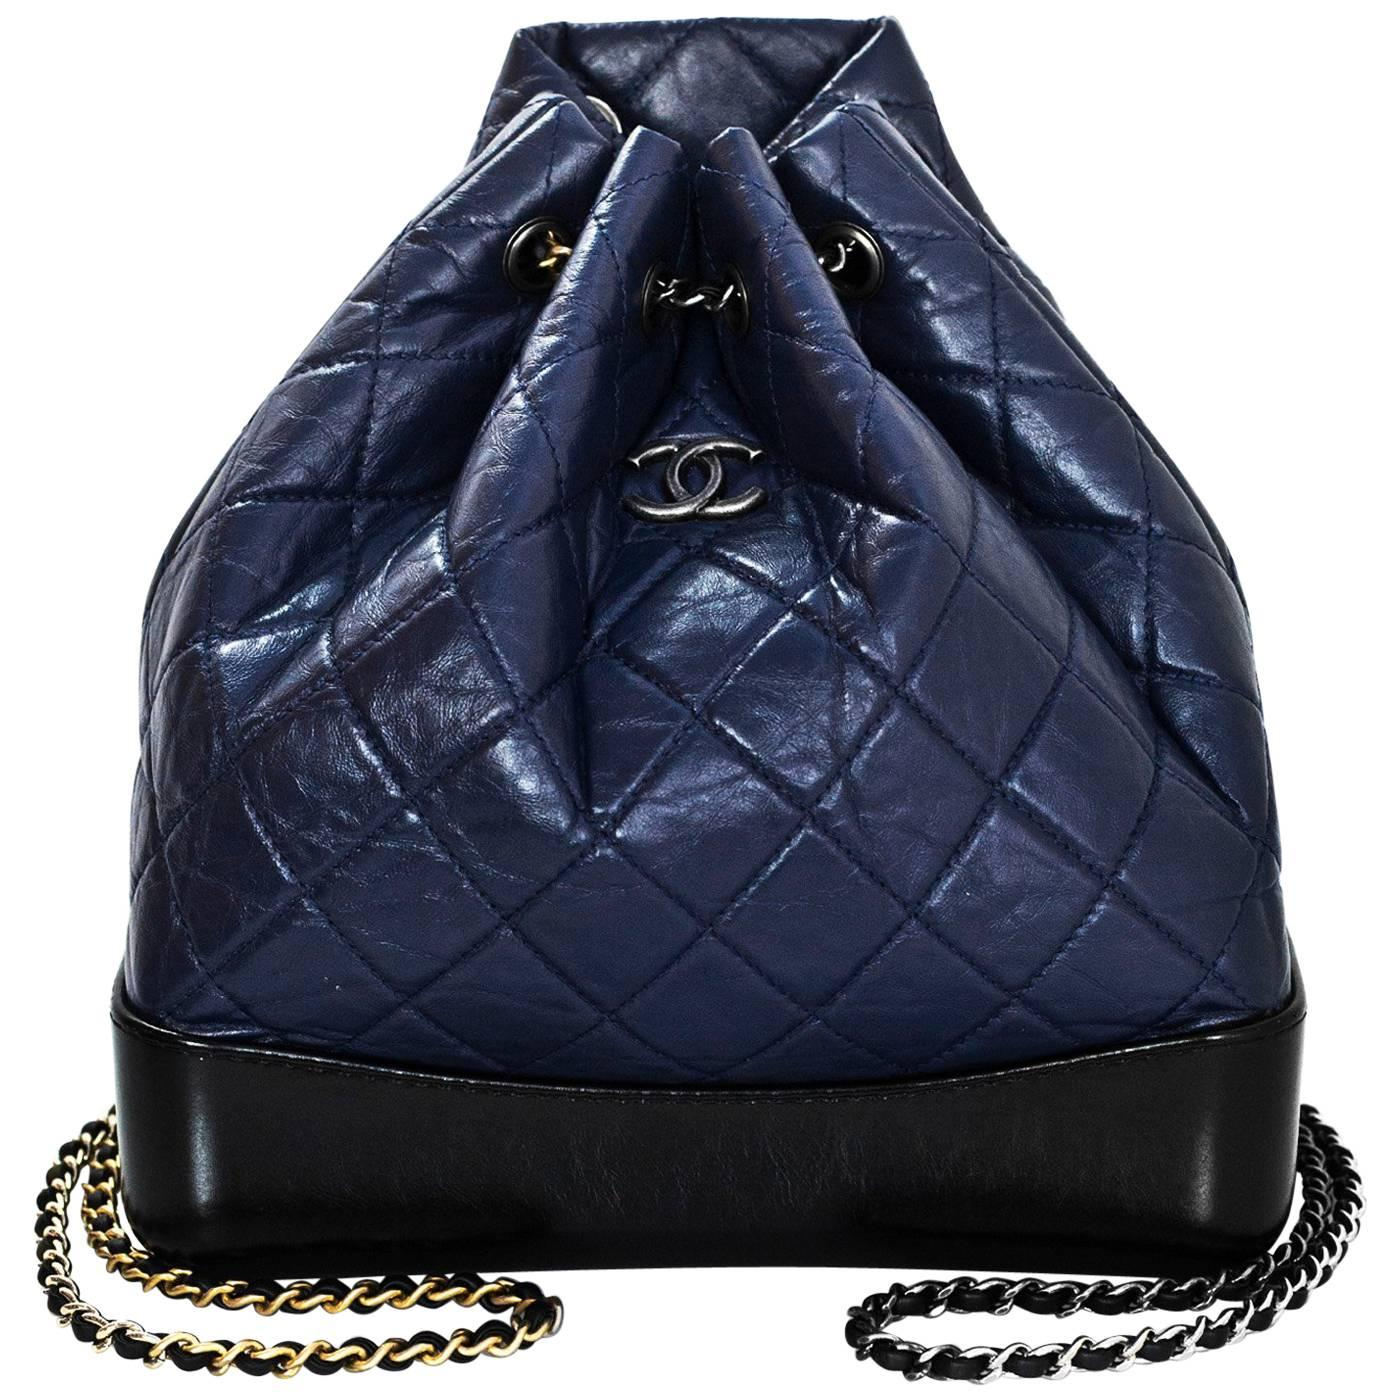 Chanel Navy And Black Aged Quilted Calfskin Gabrielle